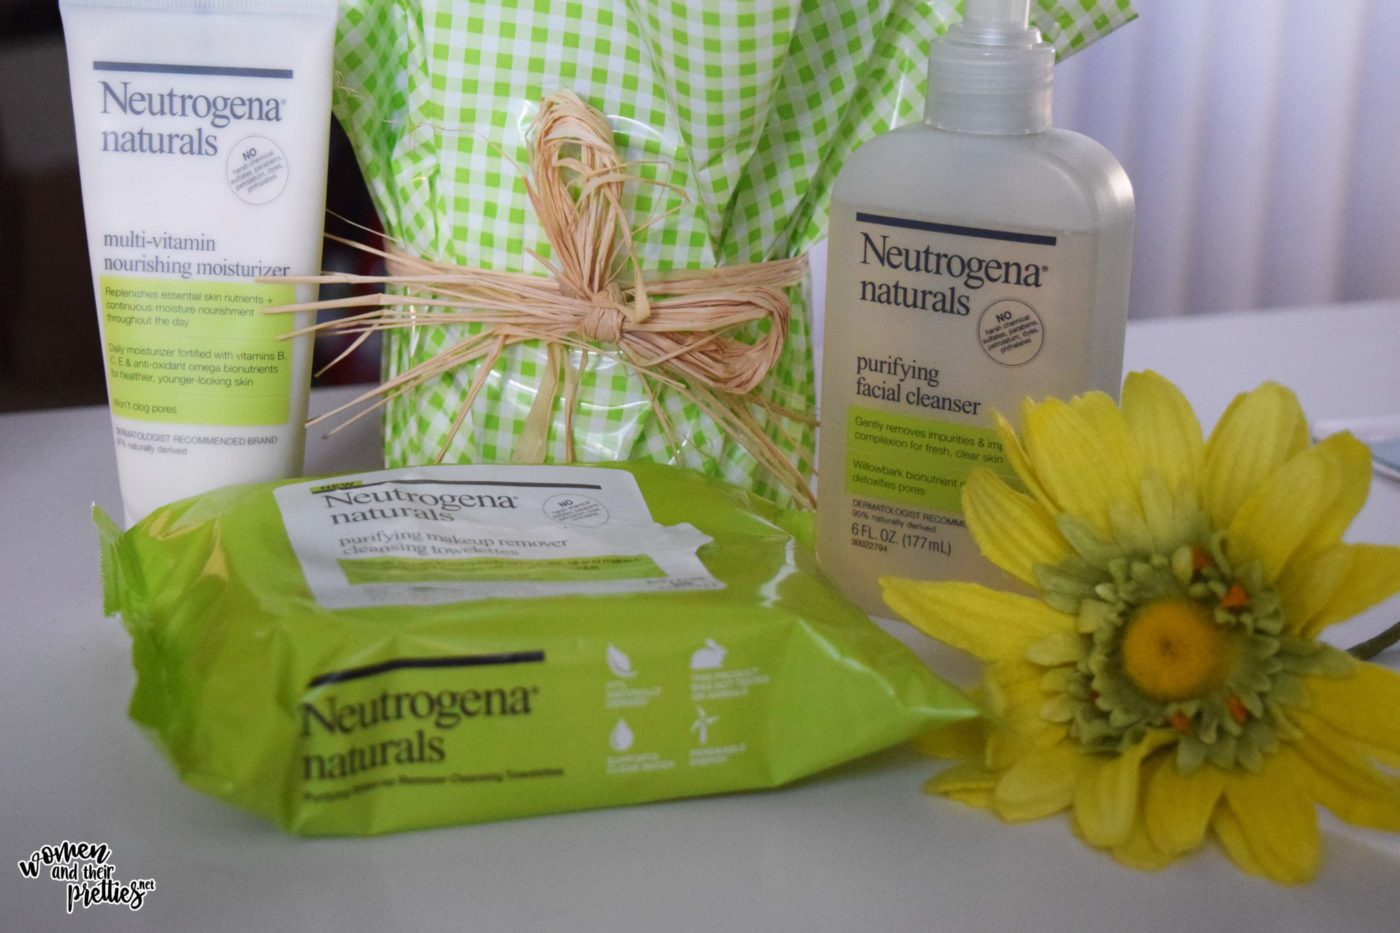 REVIEW of Neutrogena Naturals is like My Personal Skin Repairing Team